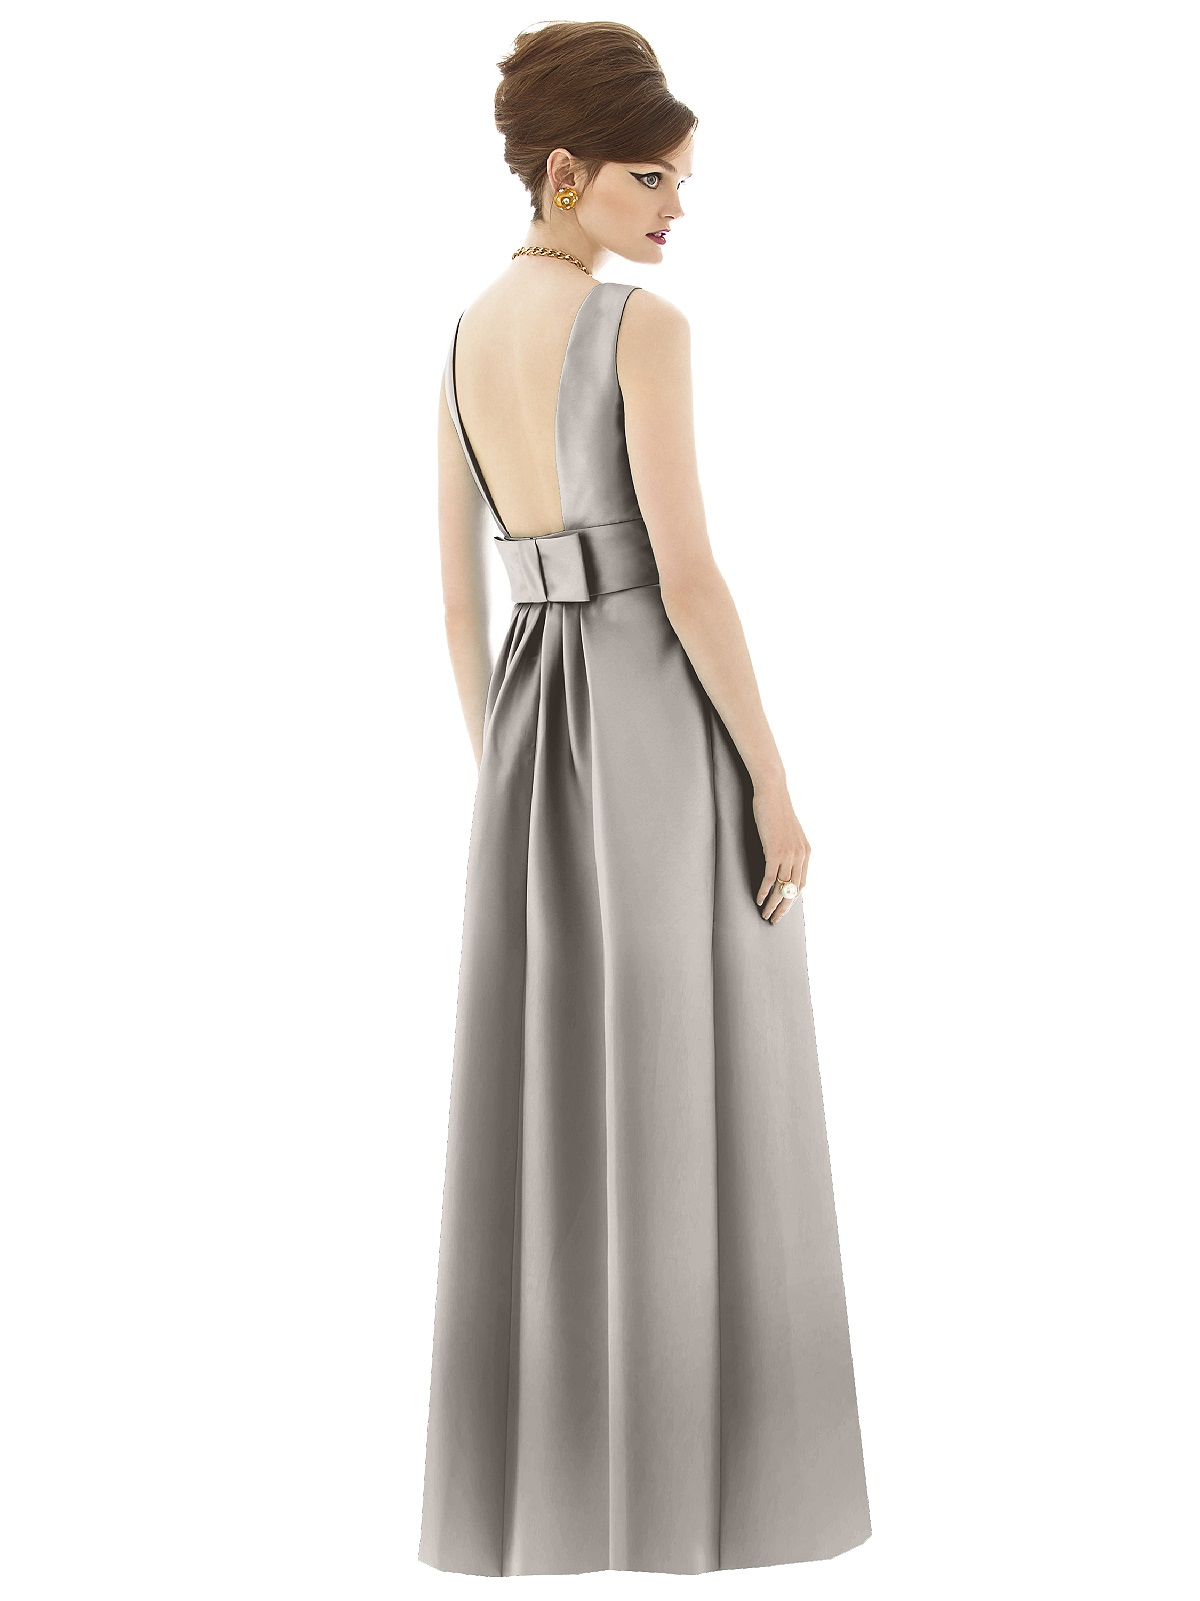 ALFRED SUNG BRIDESMAID DRESSESALFRED SUNG DRESSES D 661THE DESSY ...